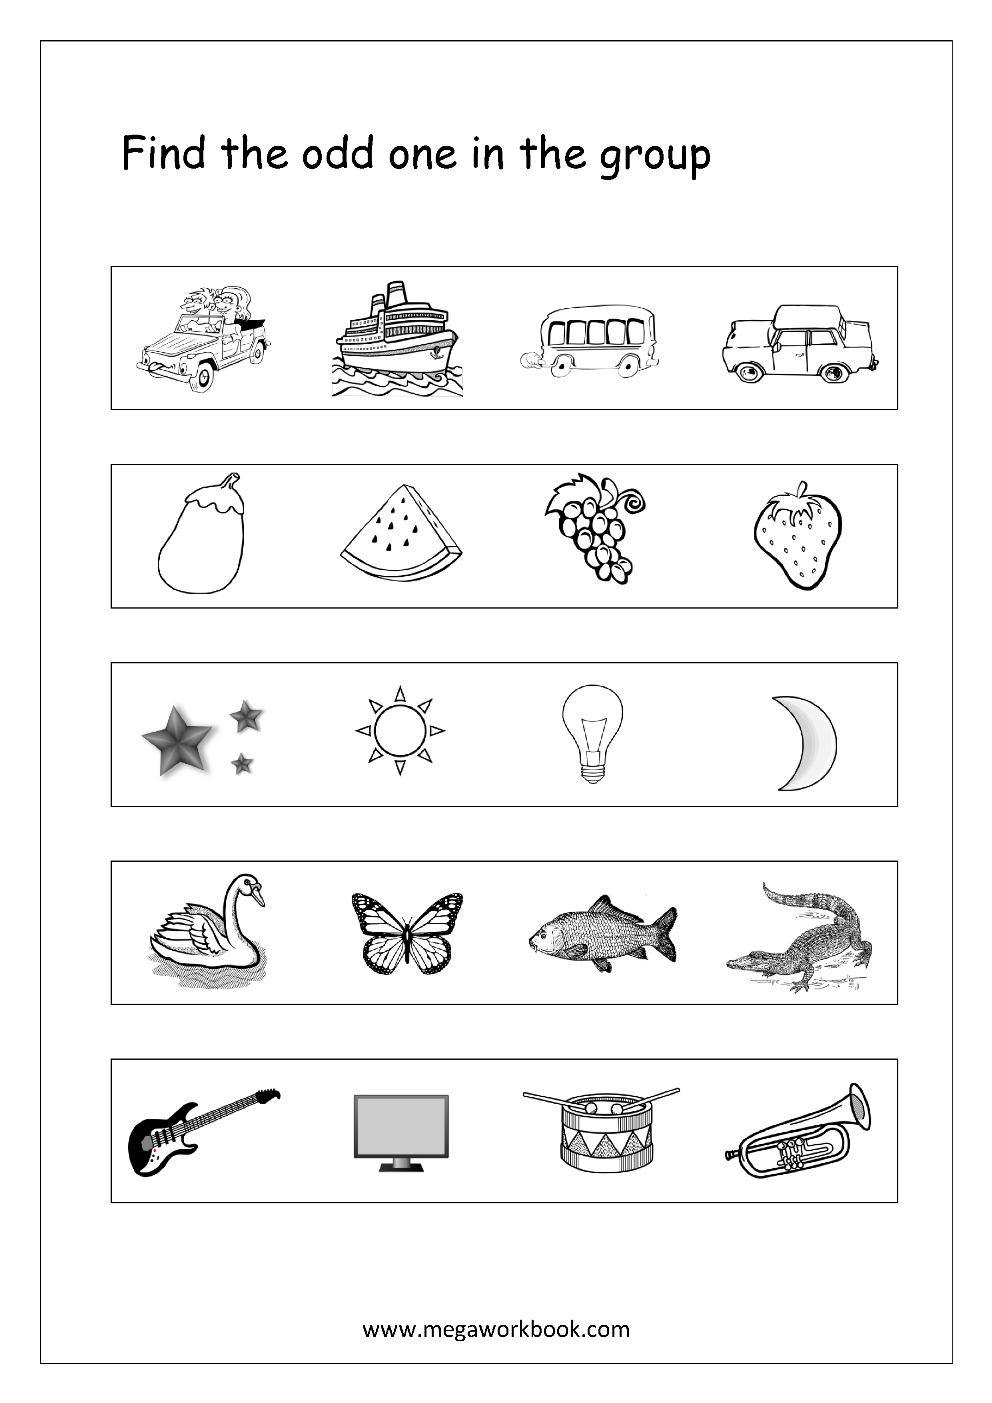 Odd One Out - Worksheet 2 | Reading worksheets, Preschool ...